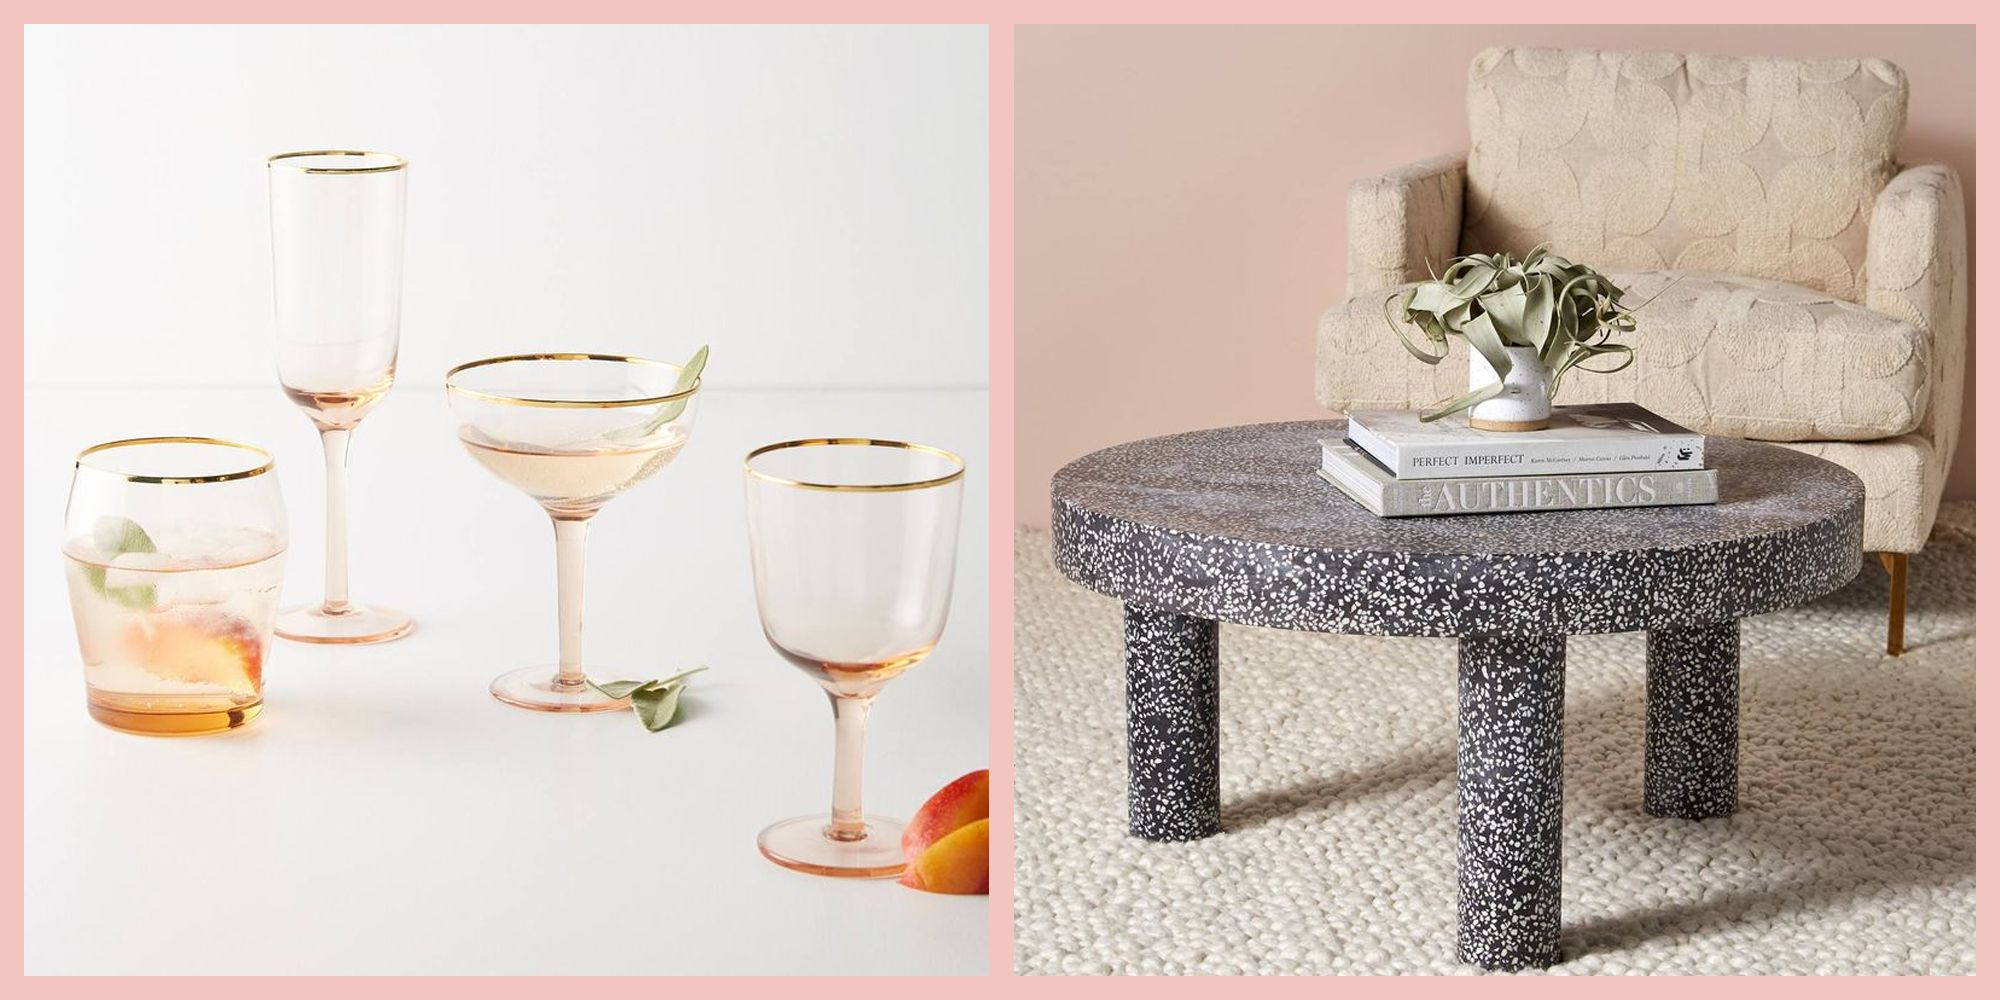 Anthropologie's 'Happy Hosting' Sale Will Convince You to Finally Throw That Party